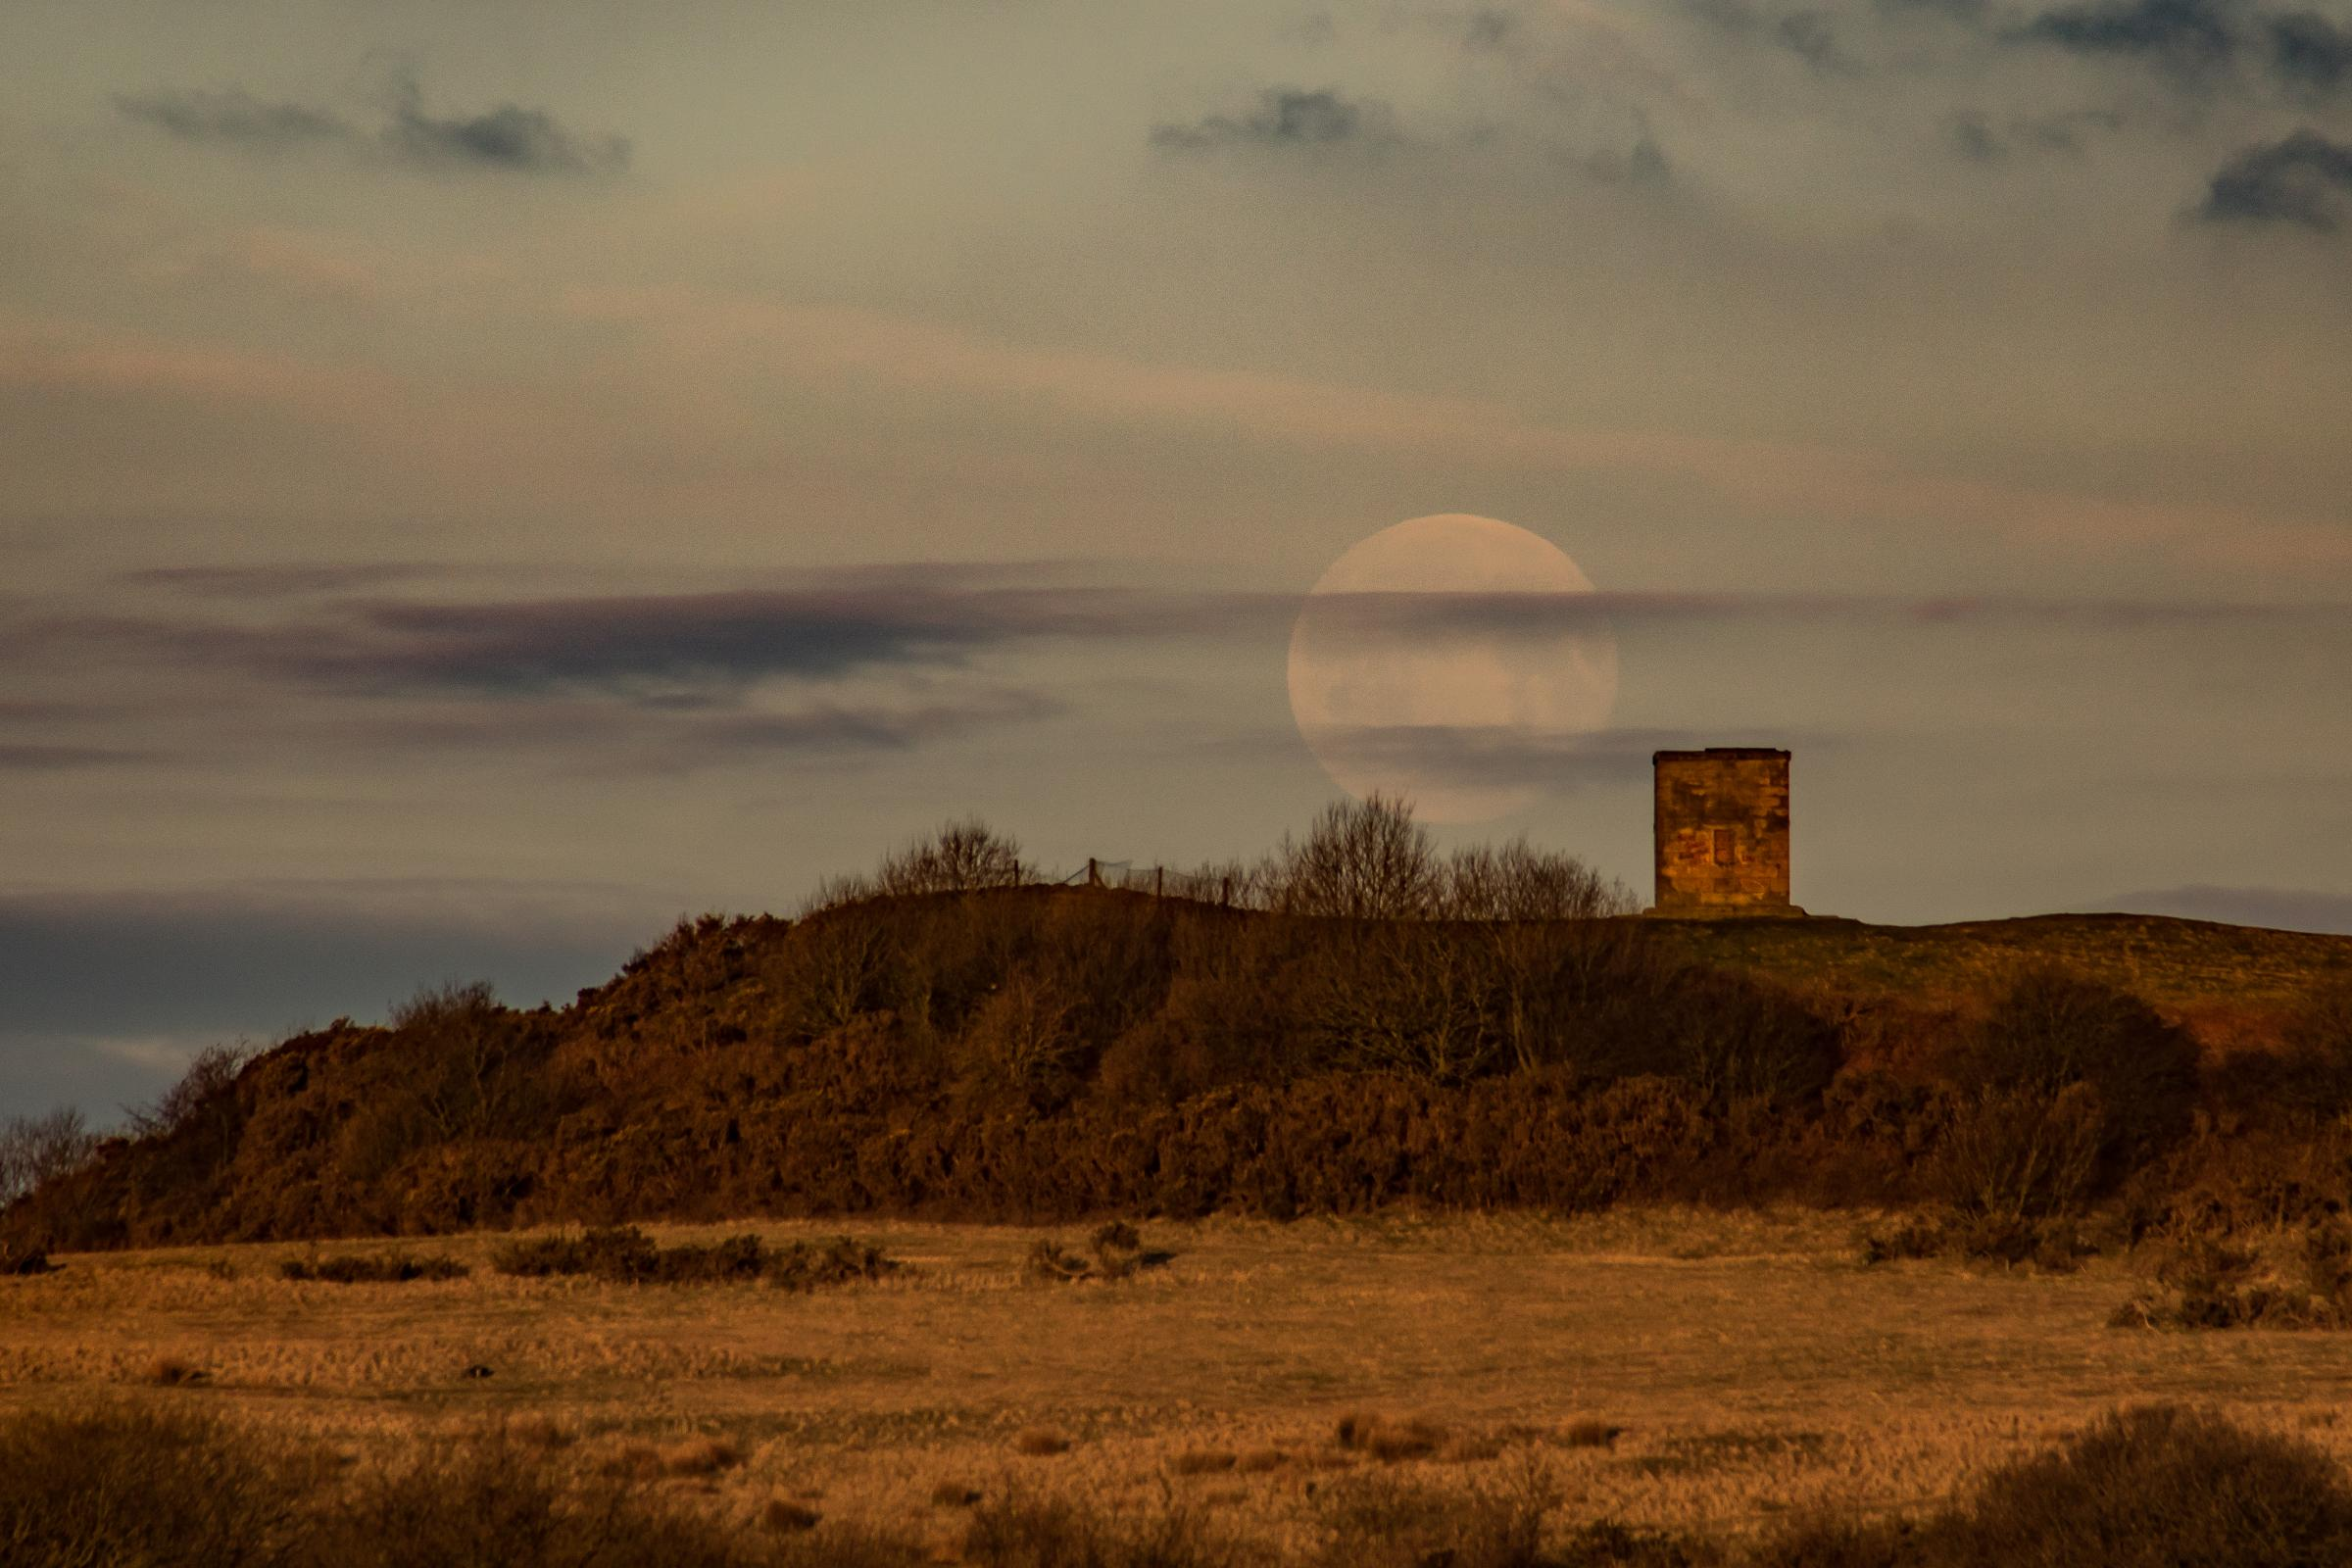 Photographer Ian Bonnell sent in this beautiful picture of the beacon. The photographer's image was widely praised across social media